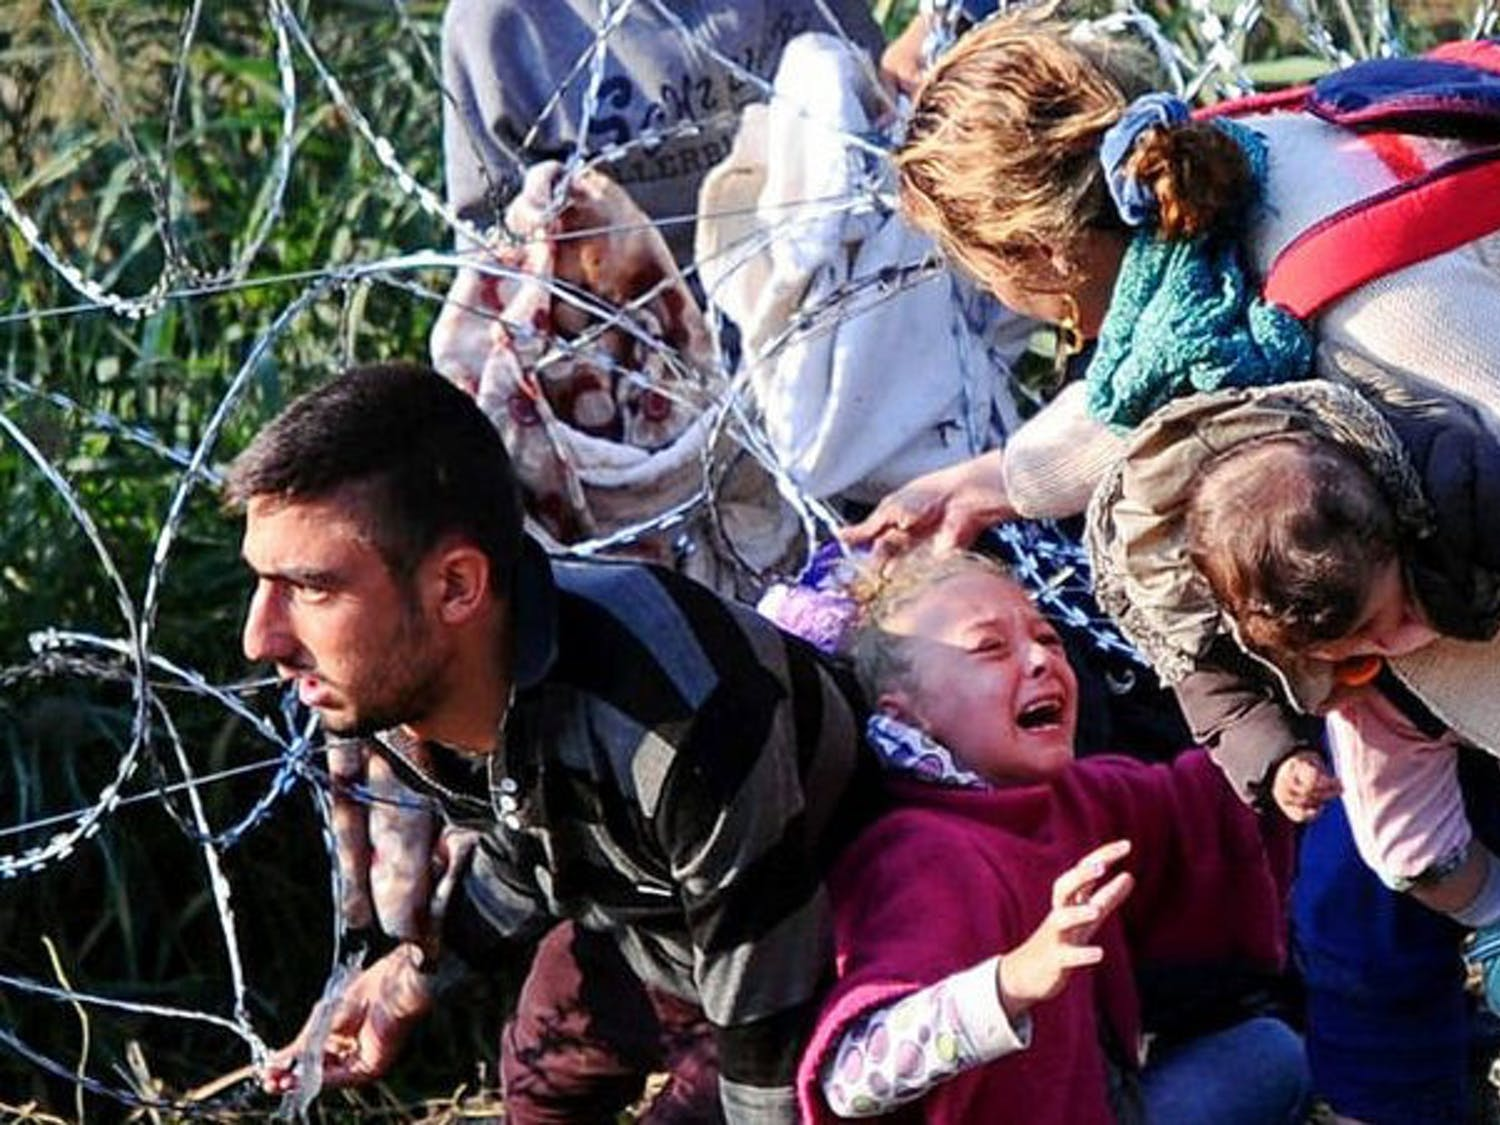 Refugees attempting to flee the war in Syria are met with scorn by the people of Europe and the U.S.